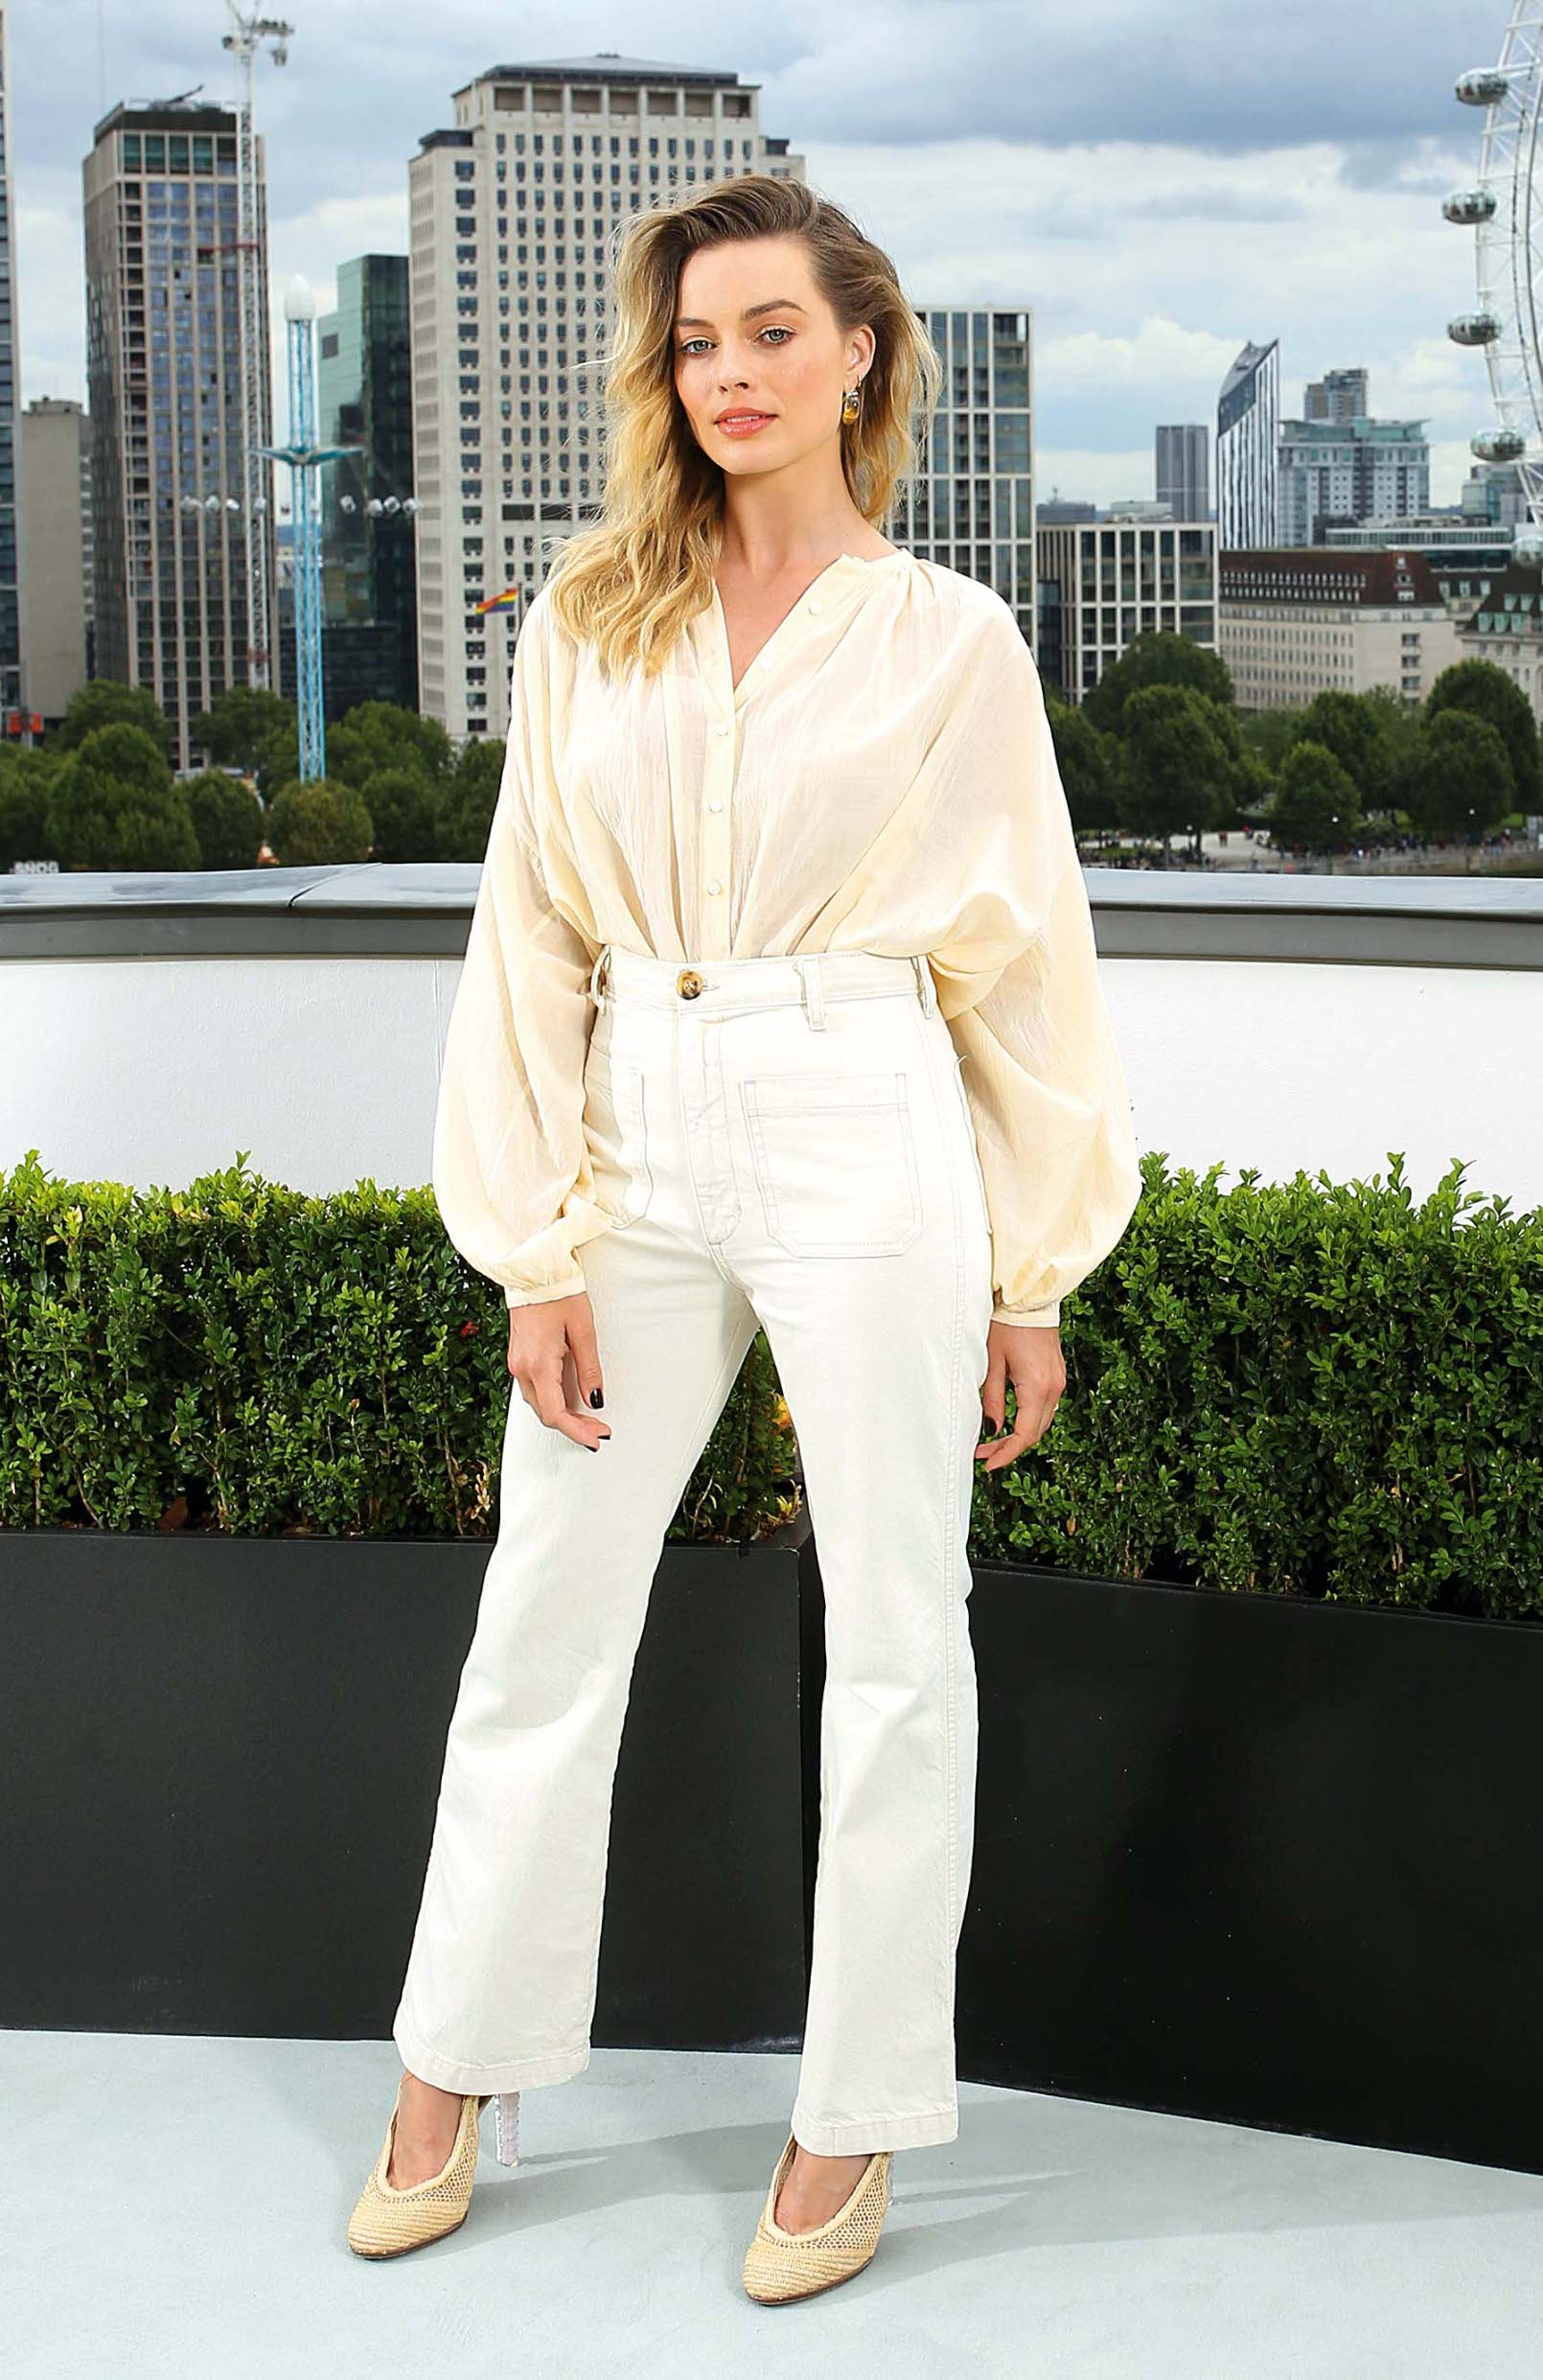 Margot Robbie attending a photocall for Once Upon A Time... In Hollywood, held at the Corinthia Hotel, London., Image: 461624277, License: Rights-managed, Restrictions: , Model Release: no, Credit line: Profimedia, Press Association